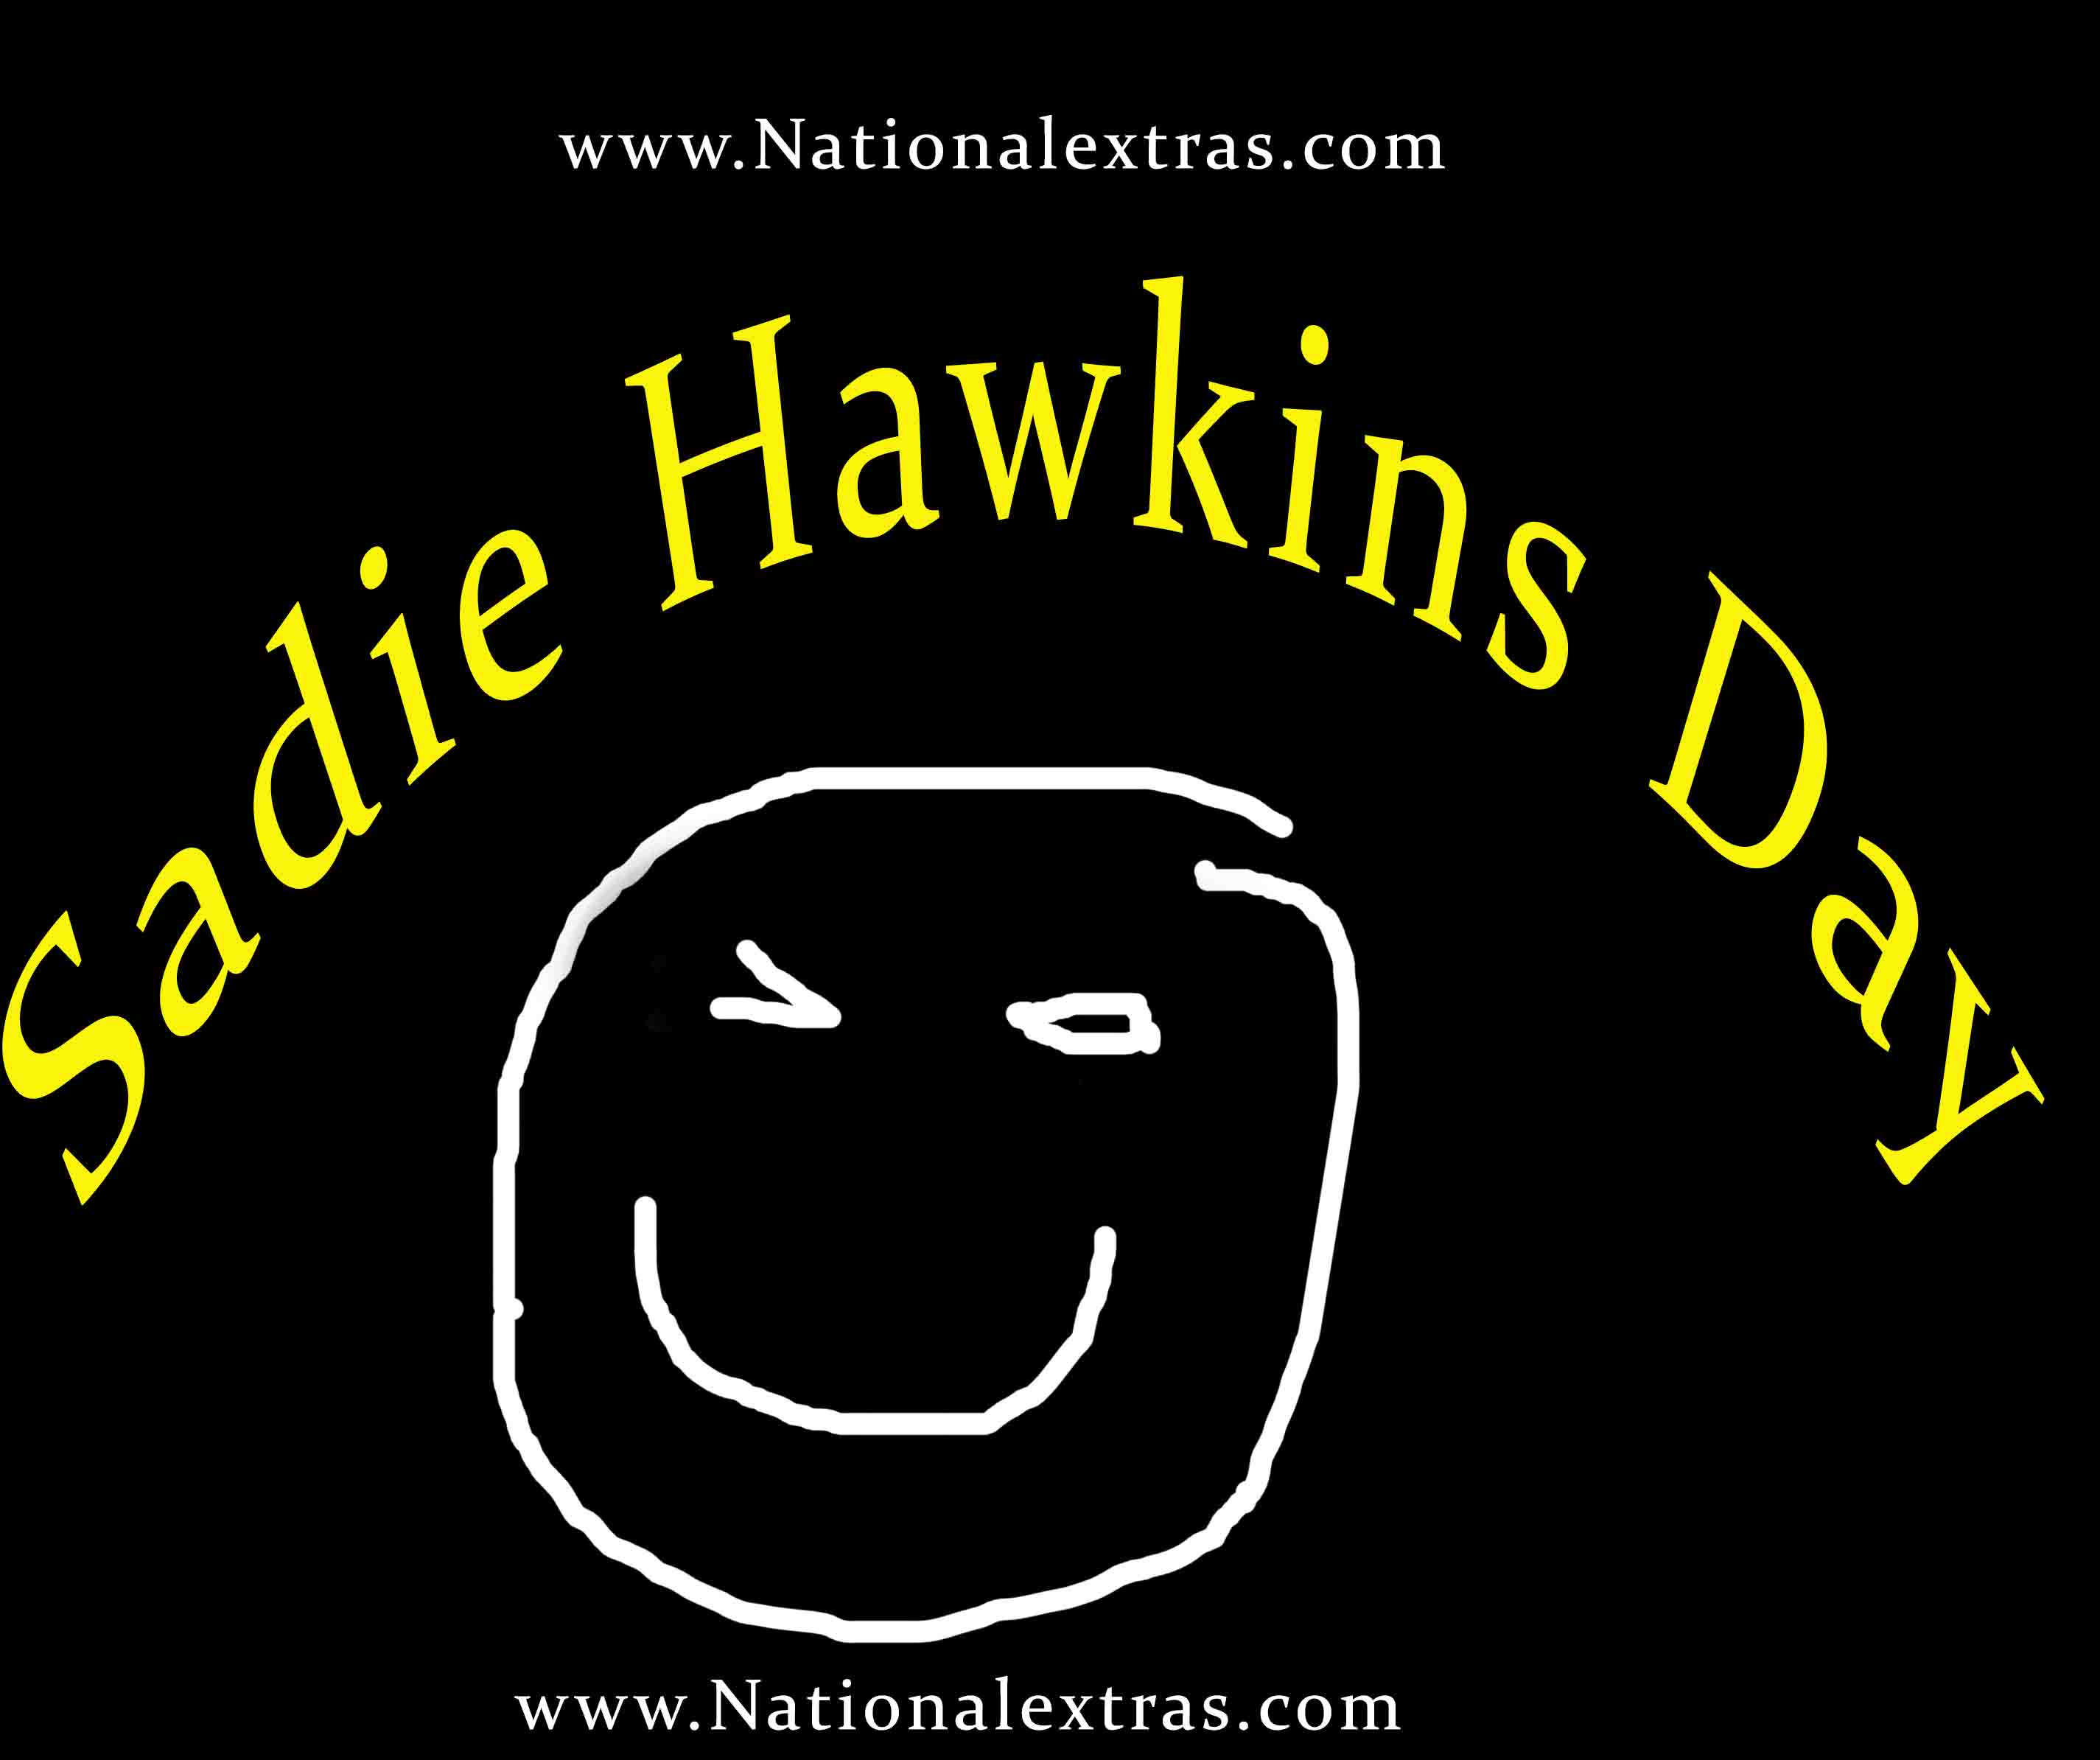 sadie hawkins day 2016 sadie hawkins song sadie hawkins ideas sadie hawkins day 2015 when is sadie hawkins day celebrated sadie b hawkins sadie hawkins day 2017 sadie hawkins outfits sadie hawkins day 2019 sadie hawkins day 2018 sadie hawkins day 2020